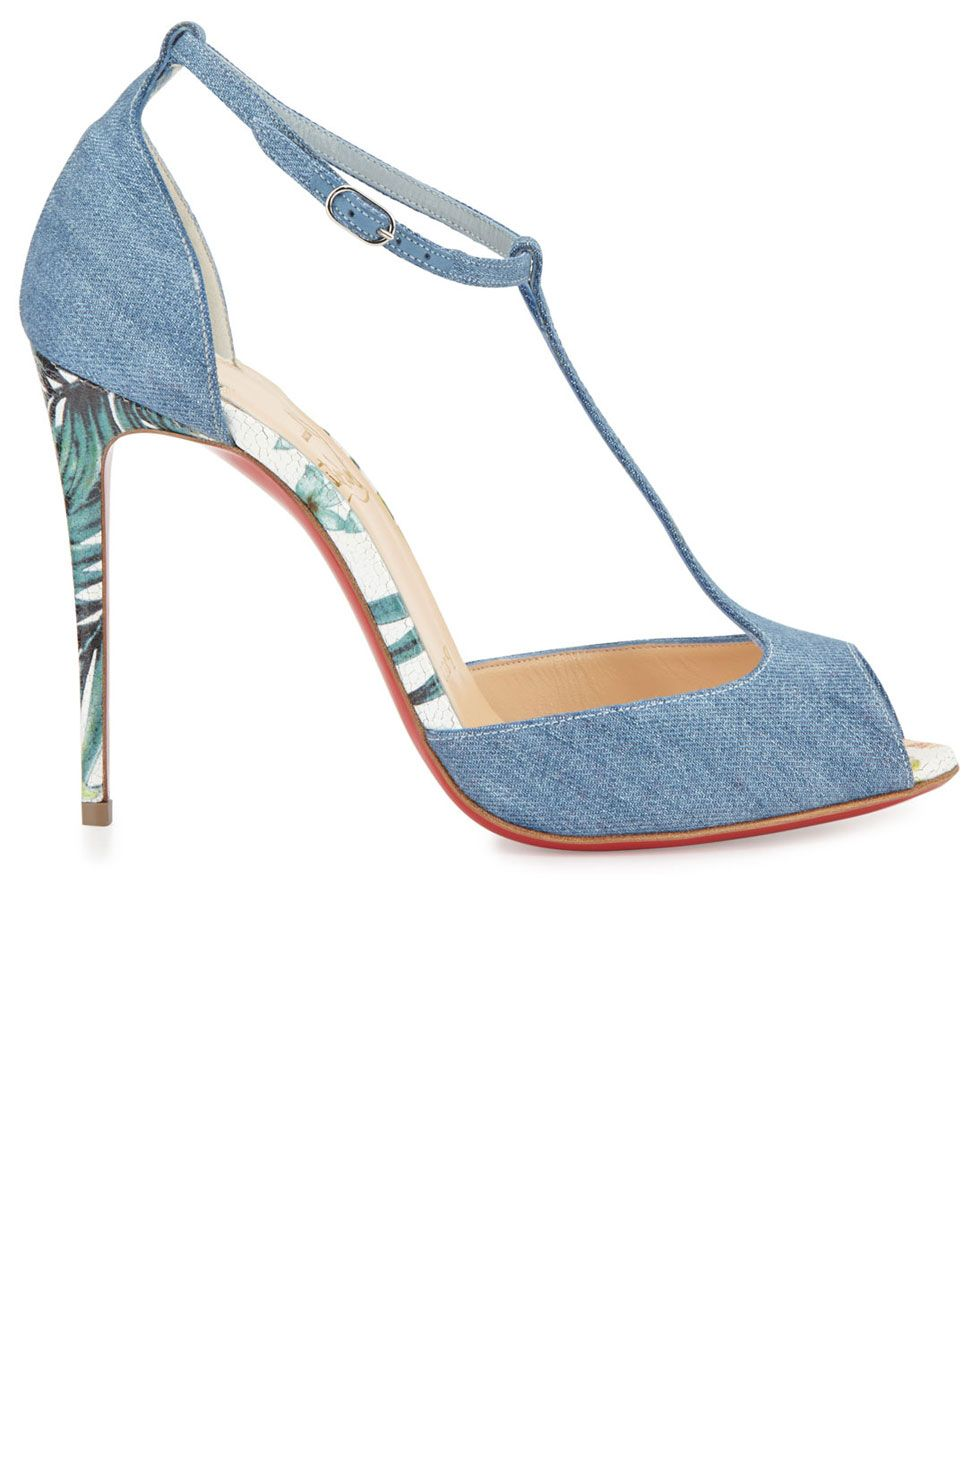 "<p>""Senora"" denim pumps, $895, <a href=""http://www.bergdorfgoodman.com/Christian-Louboutin-Senora-Denim-100mm-Red-Sole-Sandal-Blue-White/prod115630126_cat10012__/p.prod?icid=&searchType=EndecaDrivenCat&rte=%252Fcategory.service%253FitemId%253Dcat10012%2526pageSize%253D30%2526No%253D150%2526Ns%253DPCS_SORT%2526refinements%253D721&eItemId=prod115630126&cmCat=product"" target=""_blank"" data-tracking-id=""recirc-text-link"">bergdorfgoodman.com</a>.</p>"